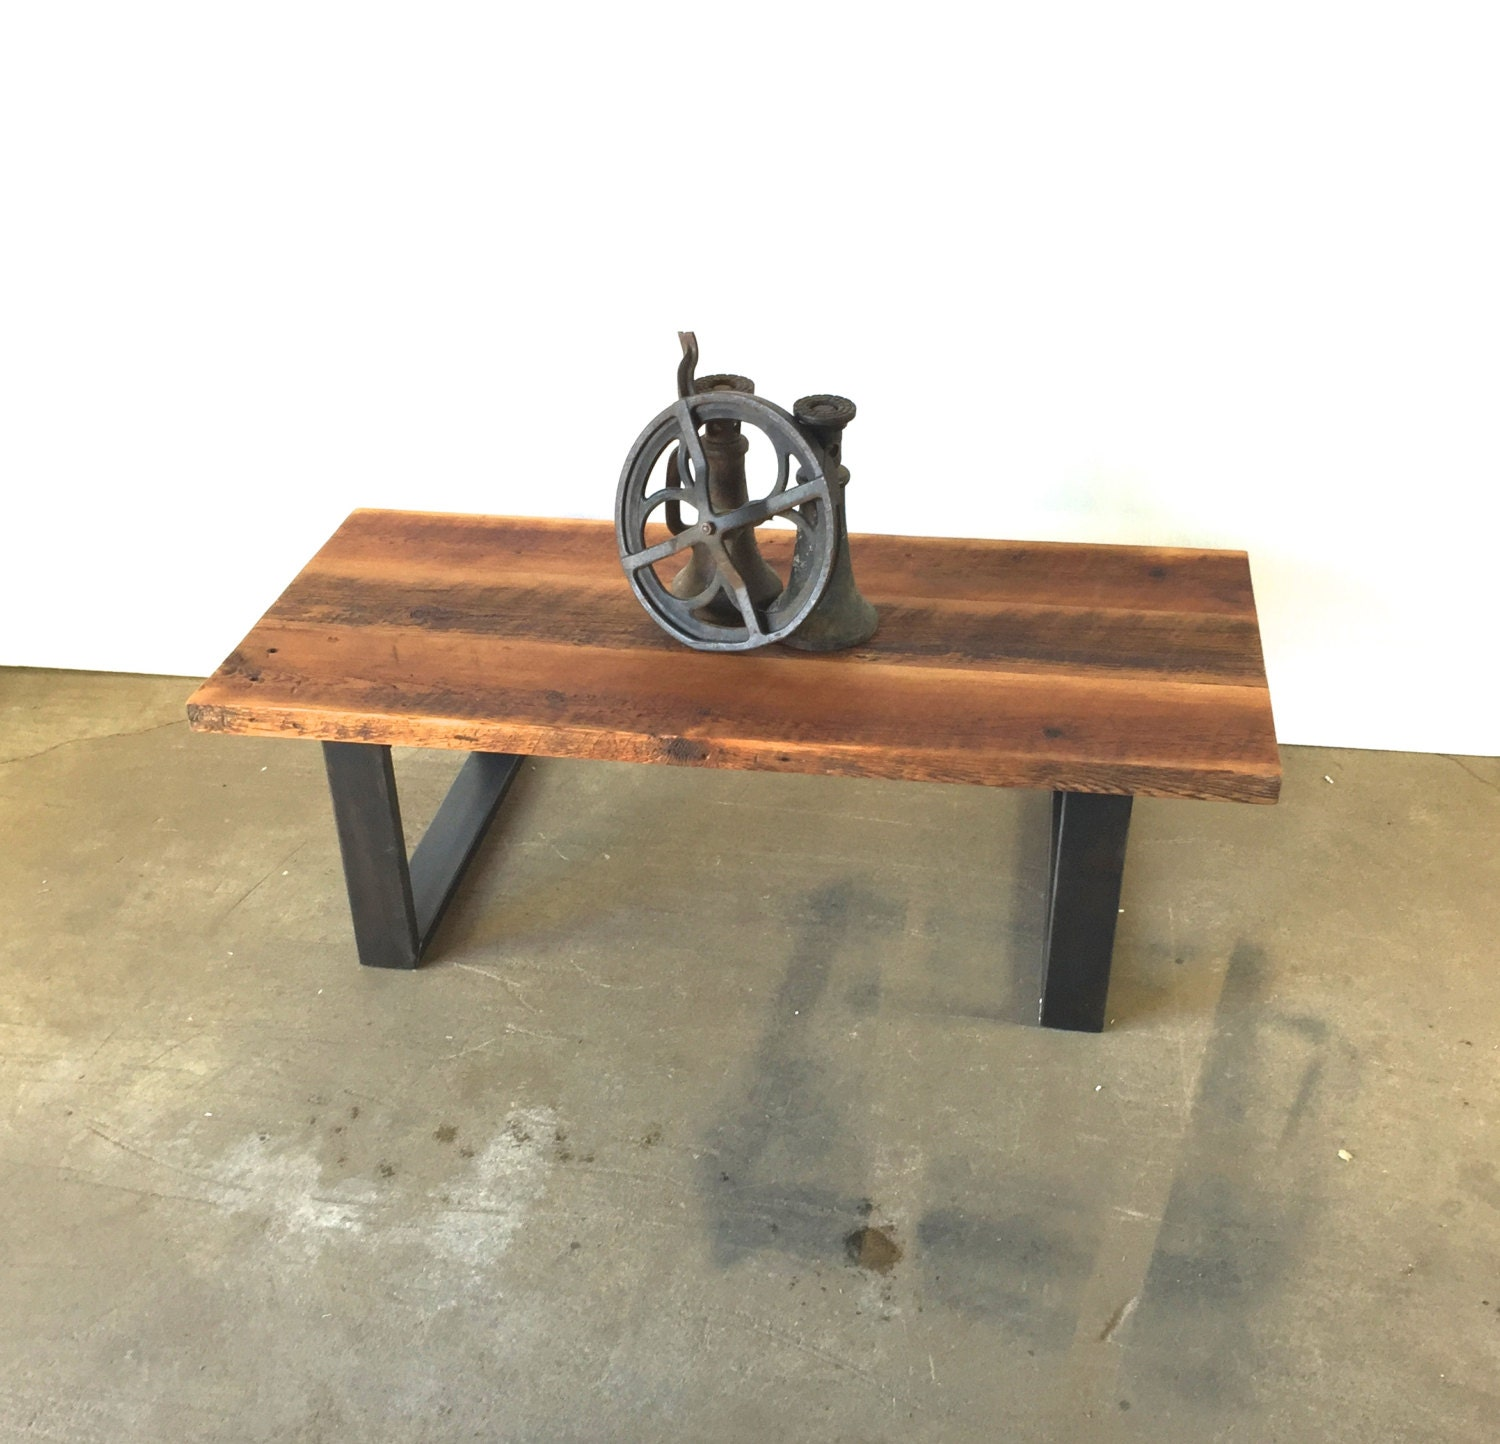 Amazing photo of Reclaimed Wood Coffee Table / Industrial Steel U Shaped by wwmake with #905D3B color and 1500x1444 pixels